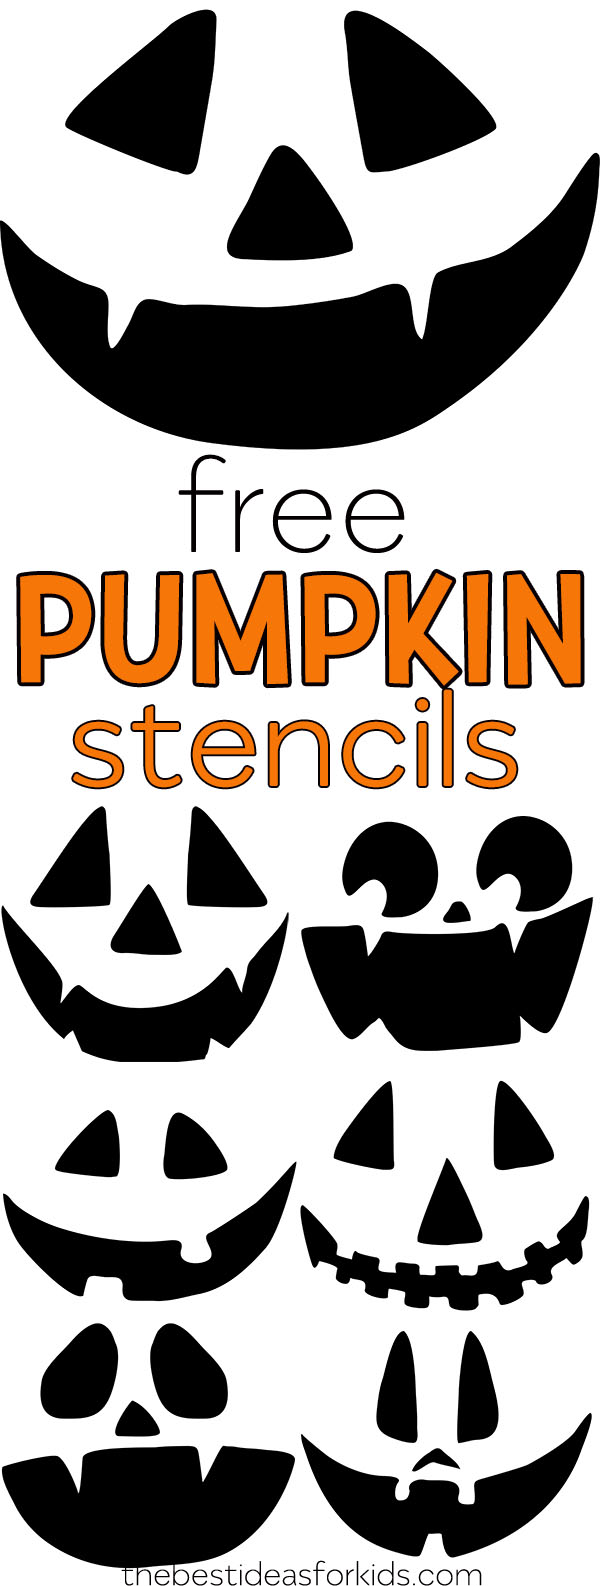 pumpkin carving patterns printable